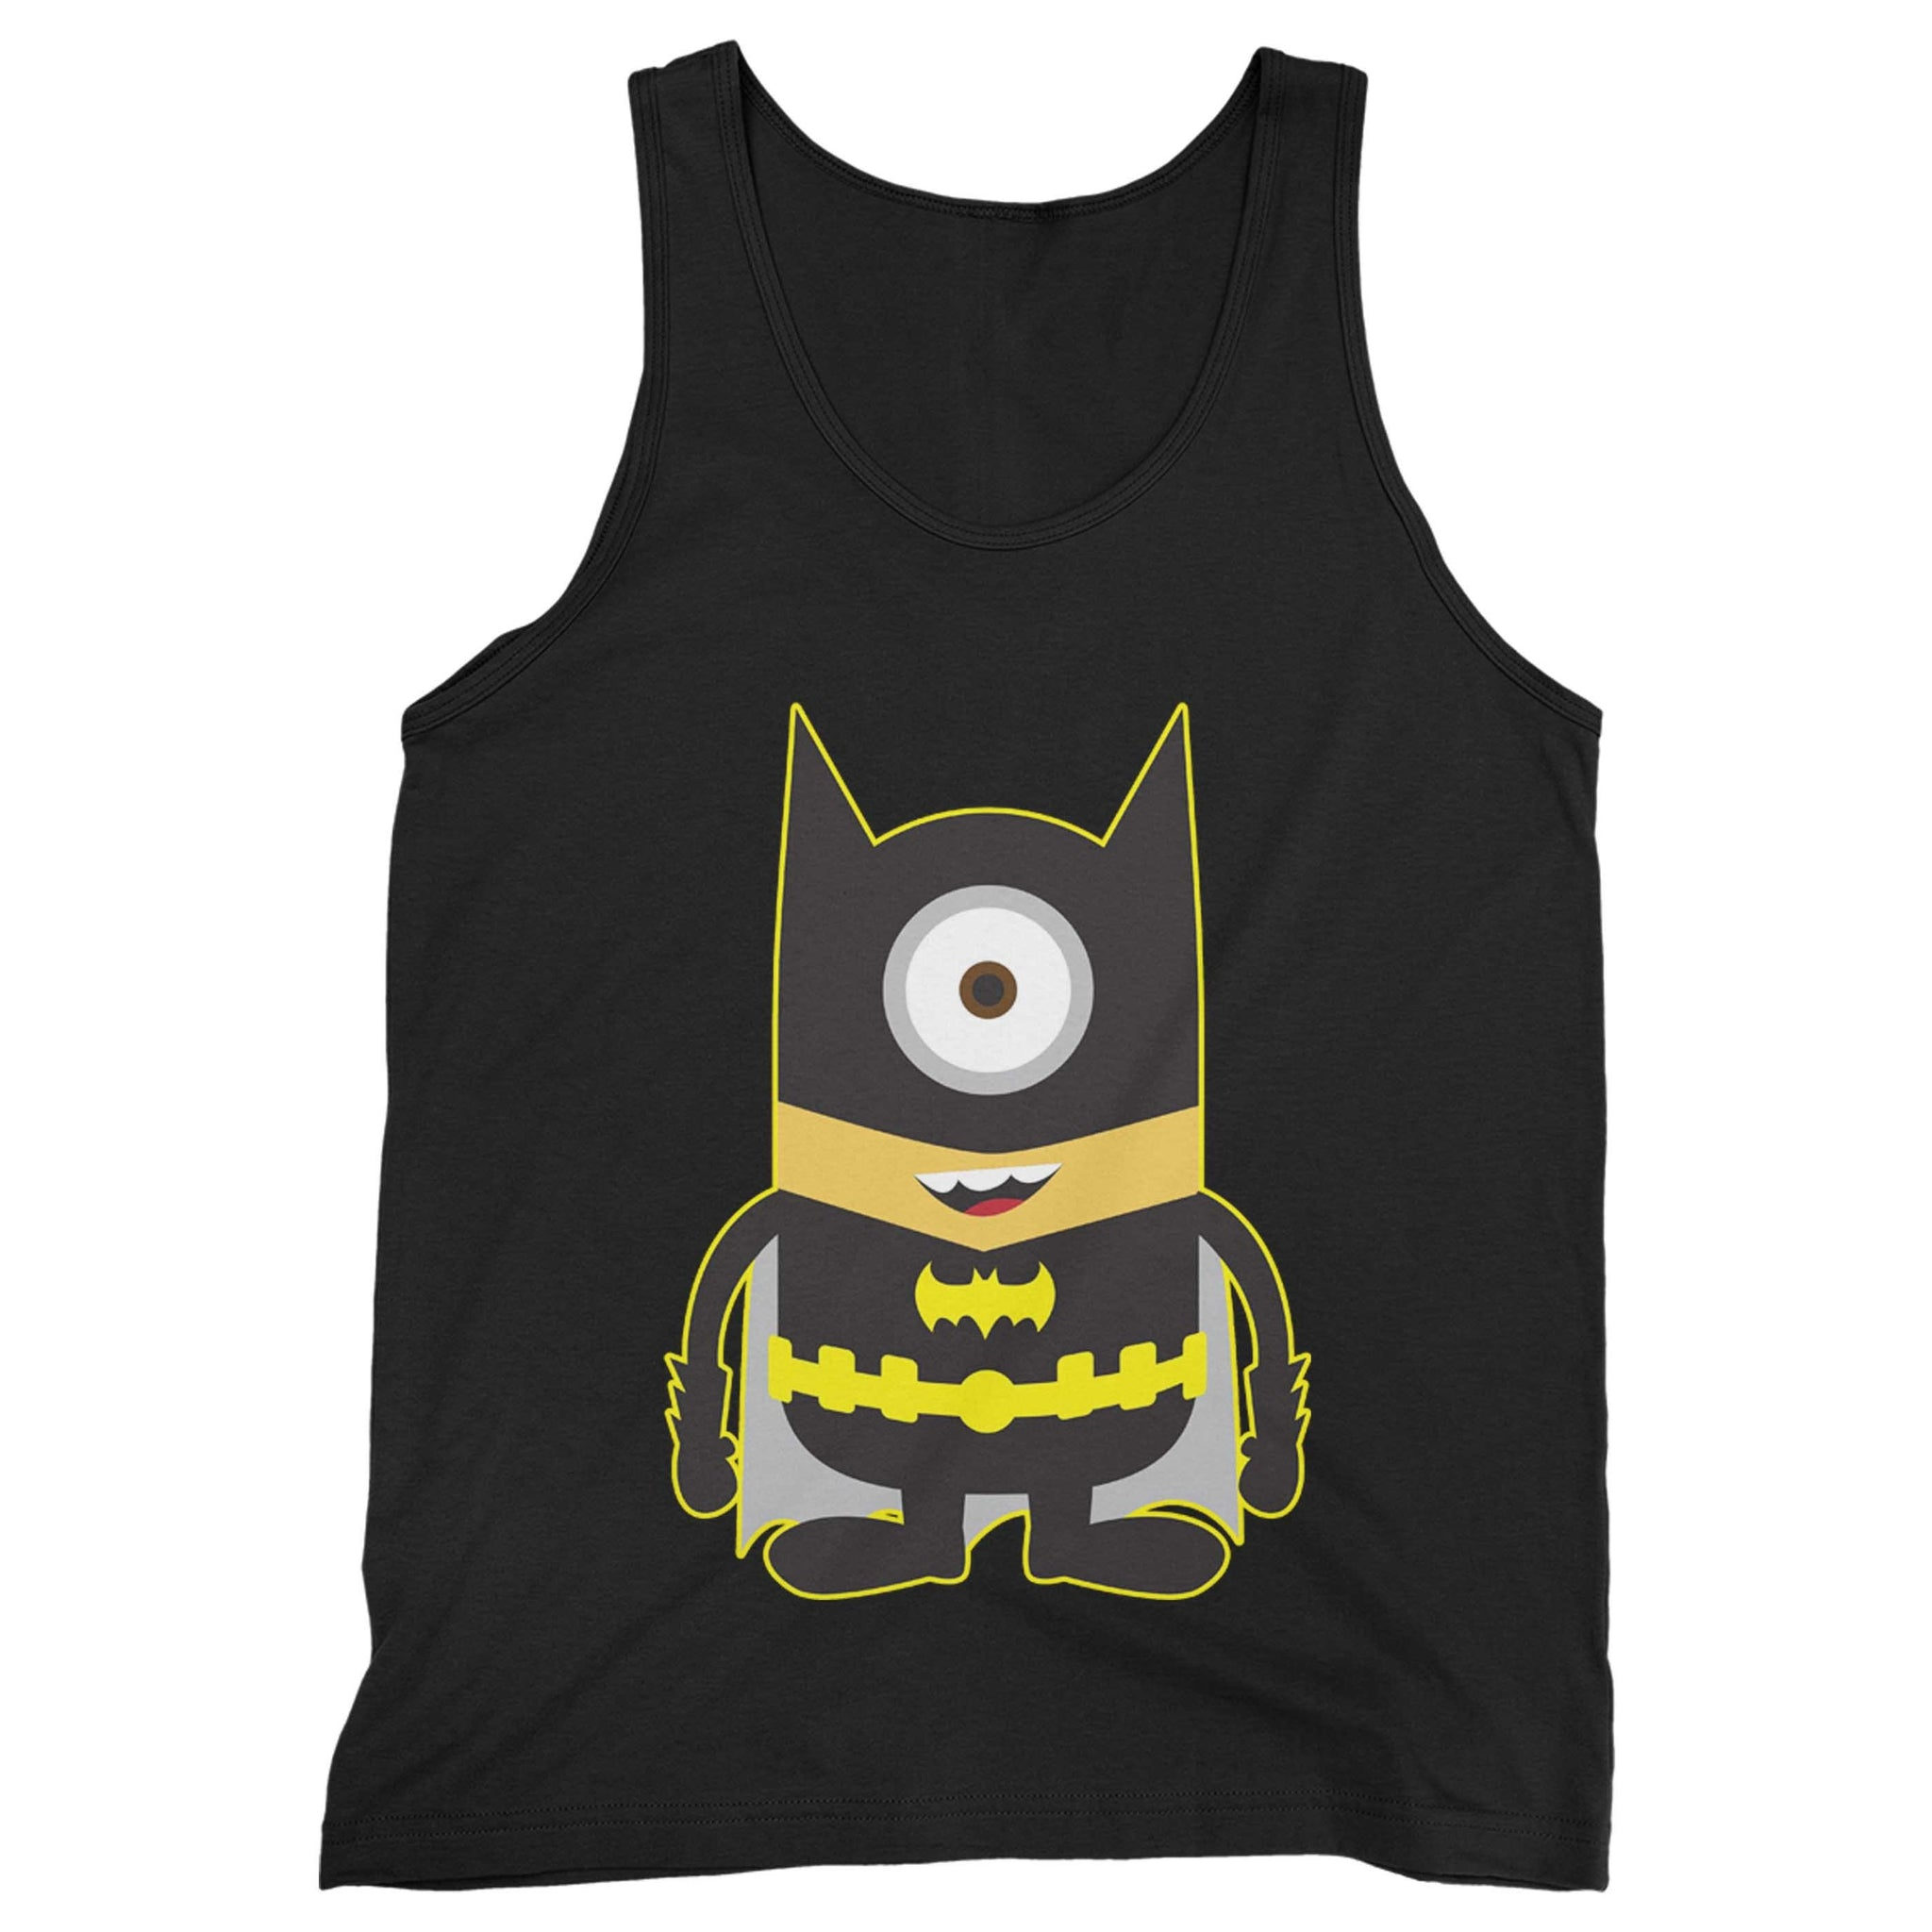 01cab2cee9cad Batman Minion Superhero Cartoon Man s Tank Top – Goodz Tee